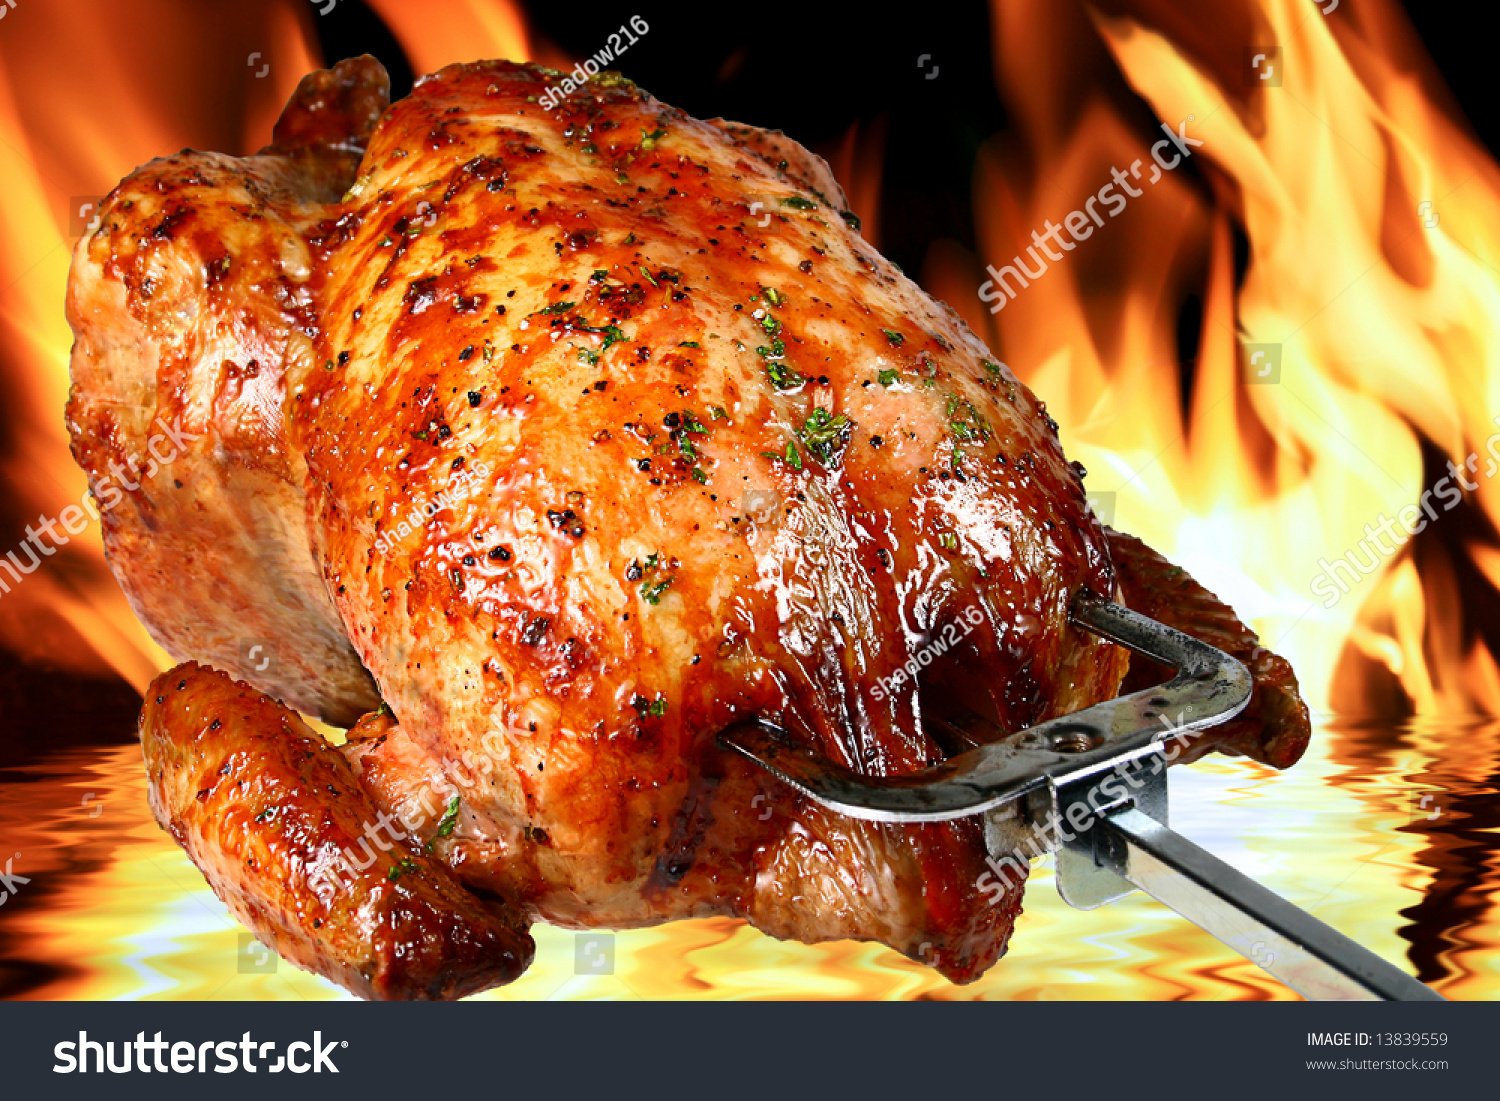 1/4 Roasted Chicken + 1 side + 1 sauce